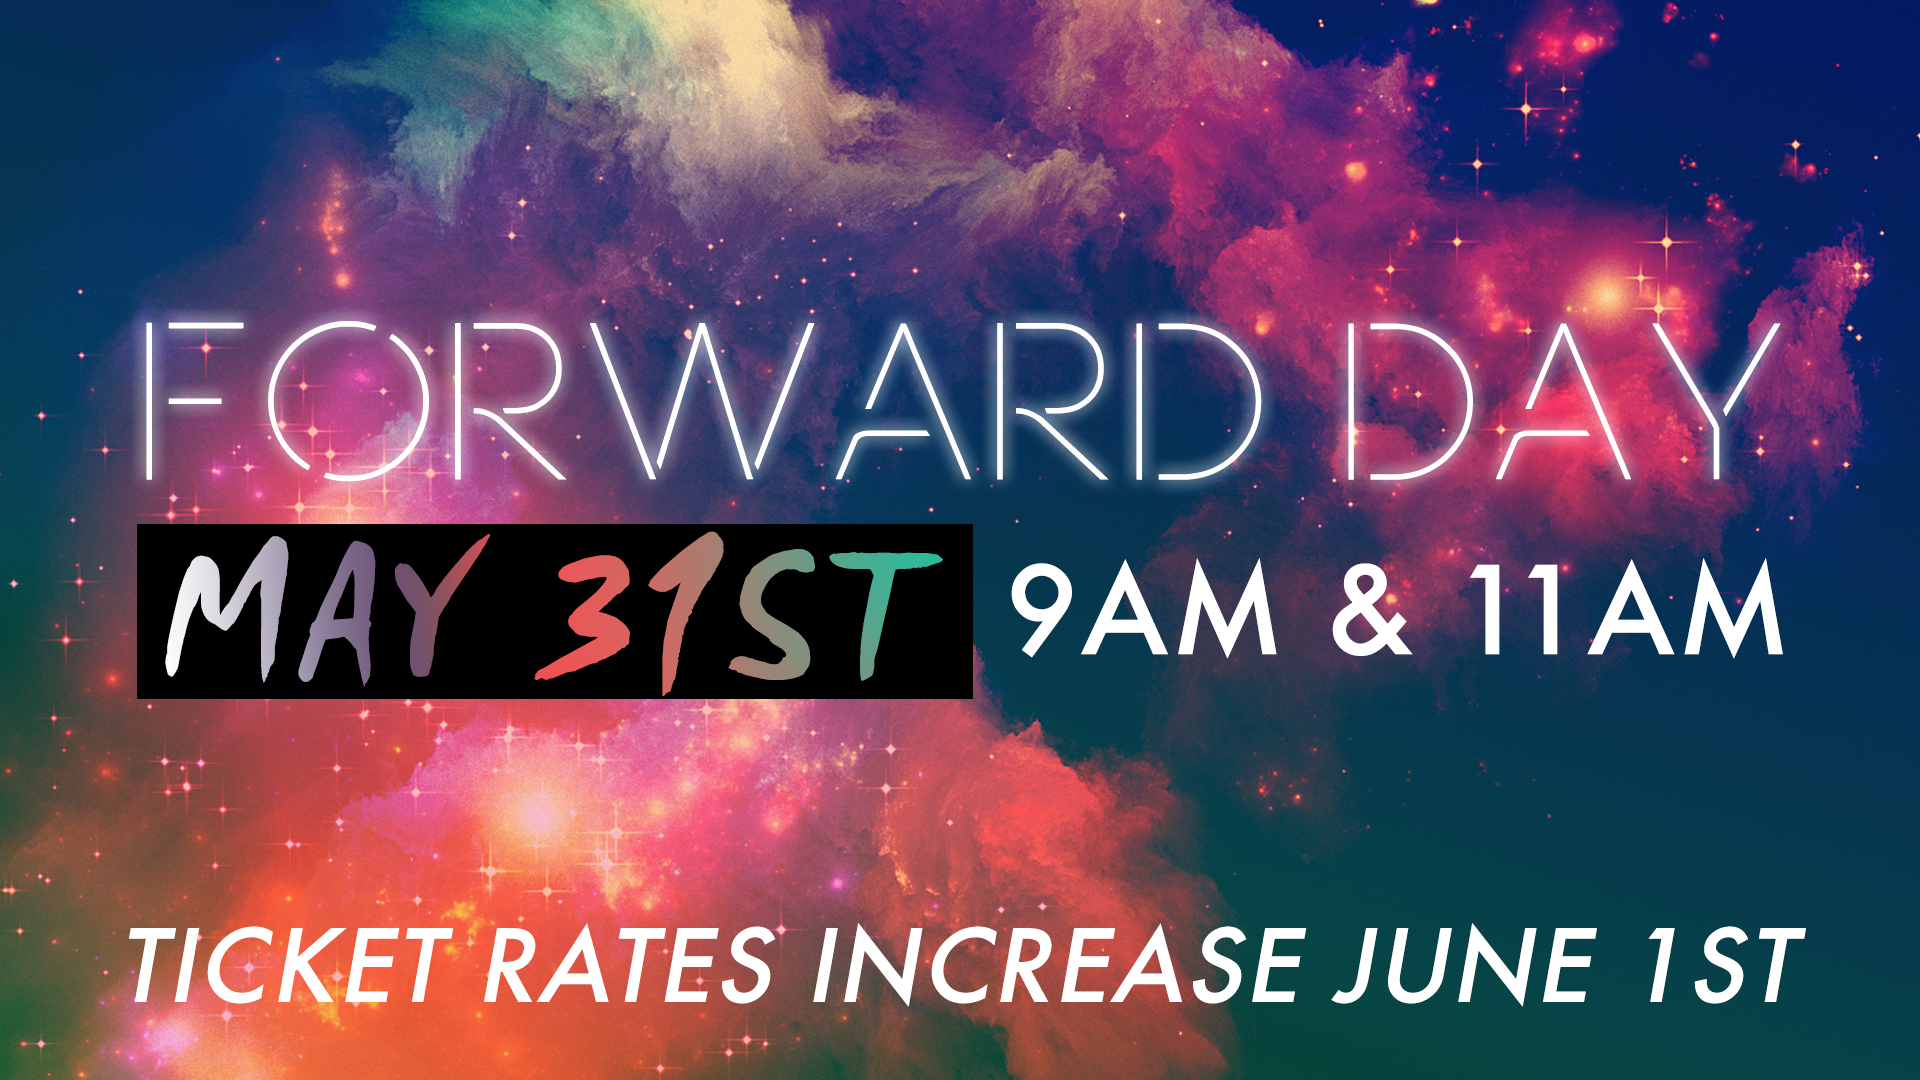 Forward-Day-2015-RATE-HD